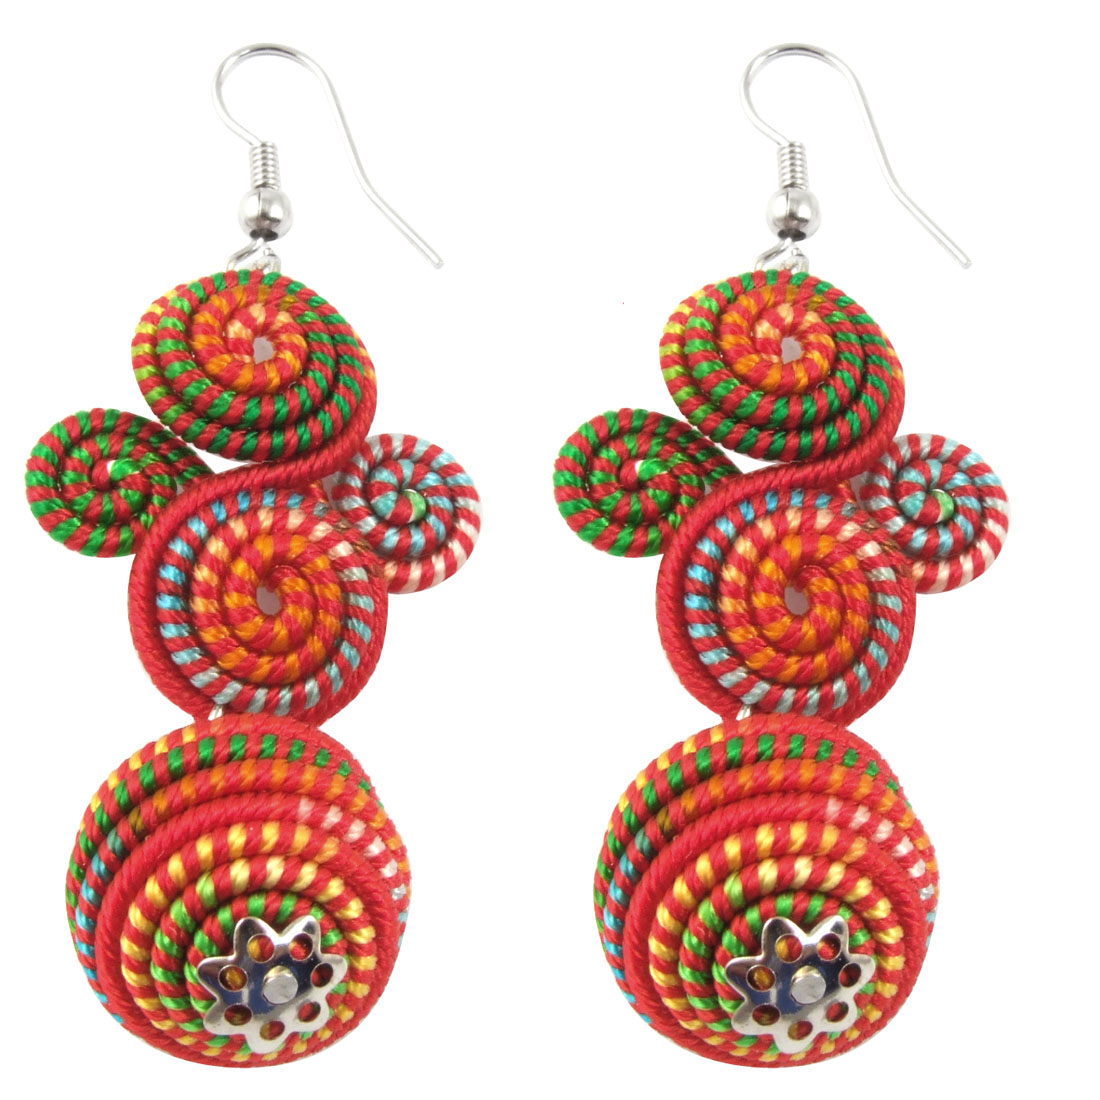 Pair Colorful Spiral Pendant Fish Hook Party Dangle Earrings for Ladies